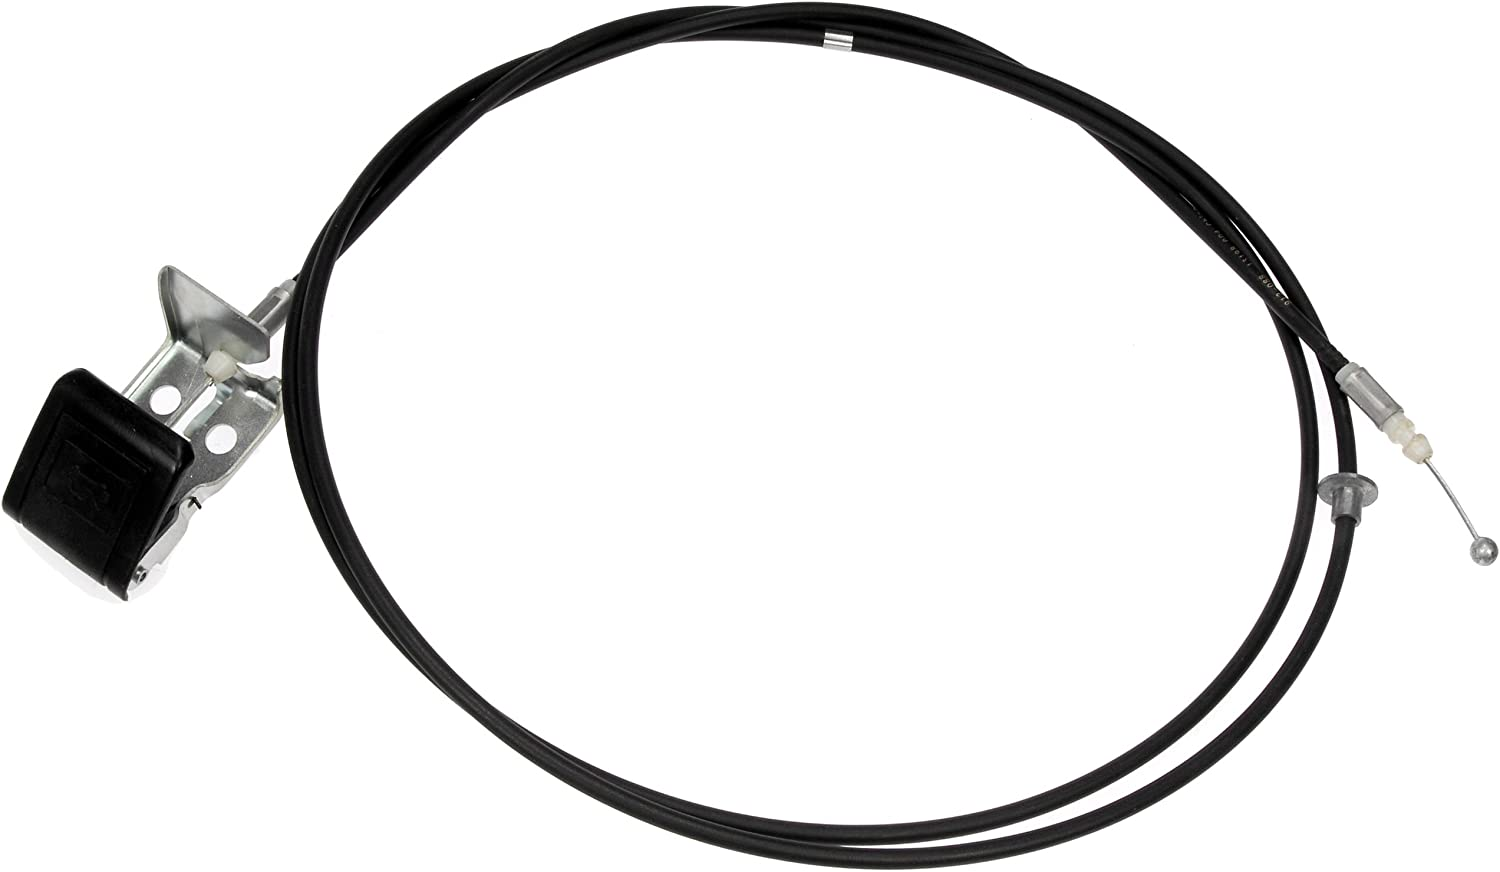 Hood Release Cable-Cable Hood Release Dorman 912-070 fits 04-09 Toyota Prius